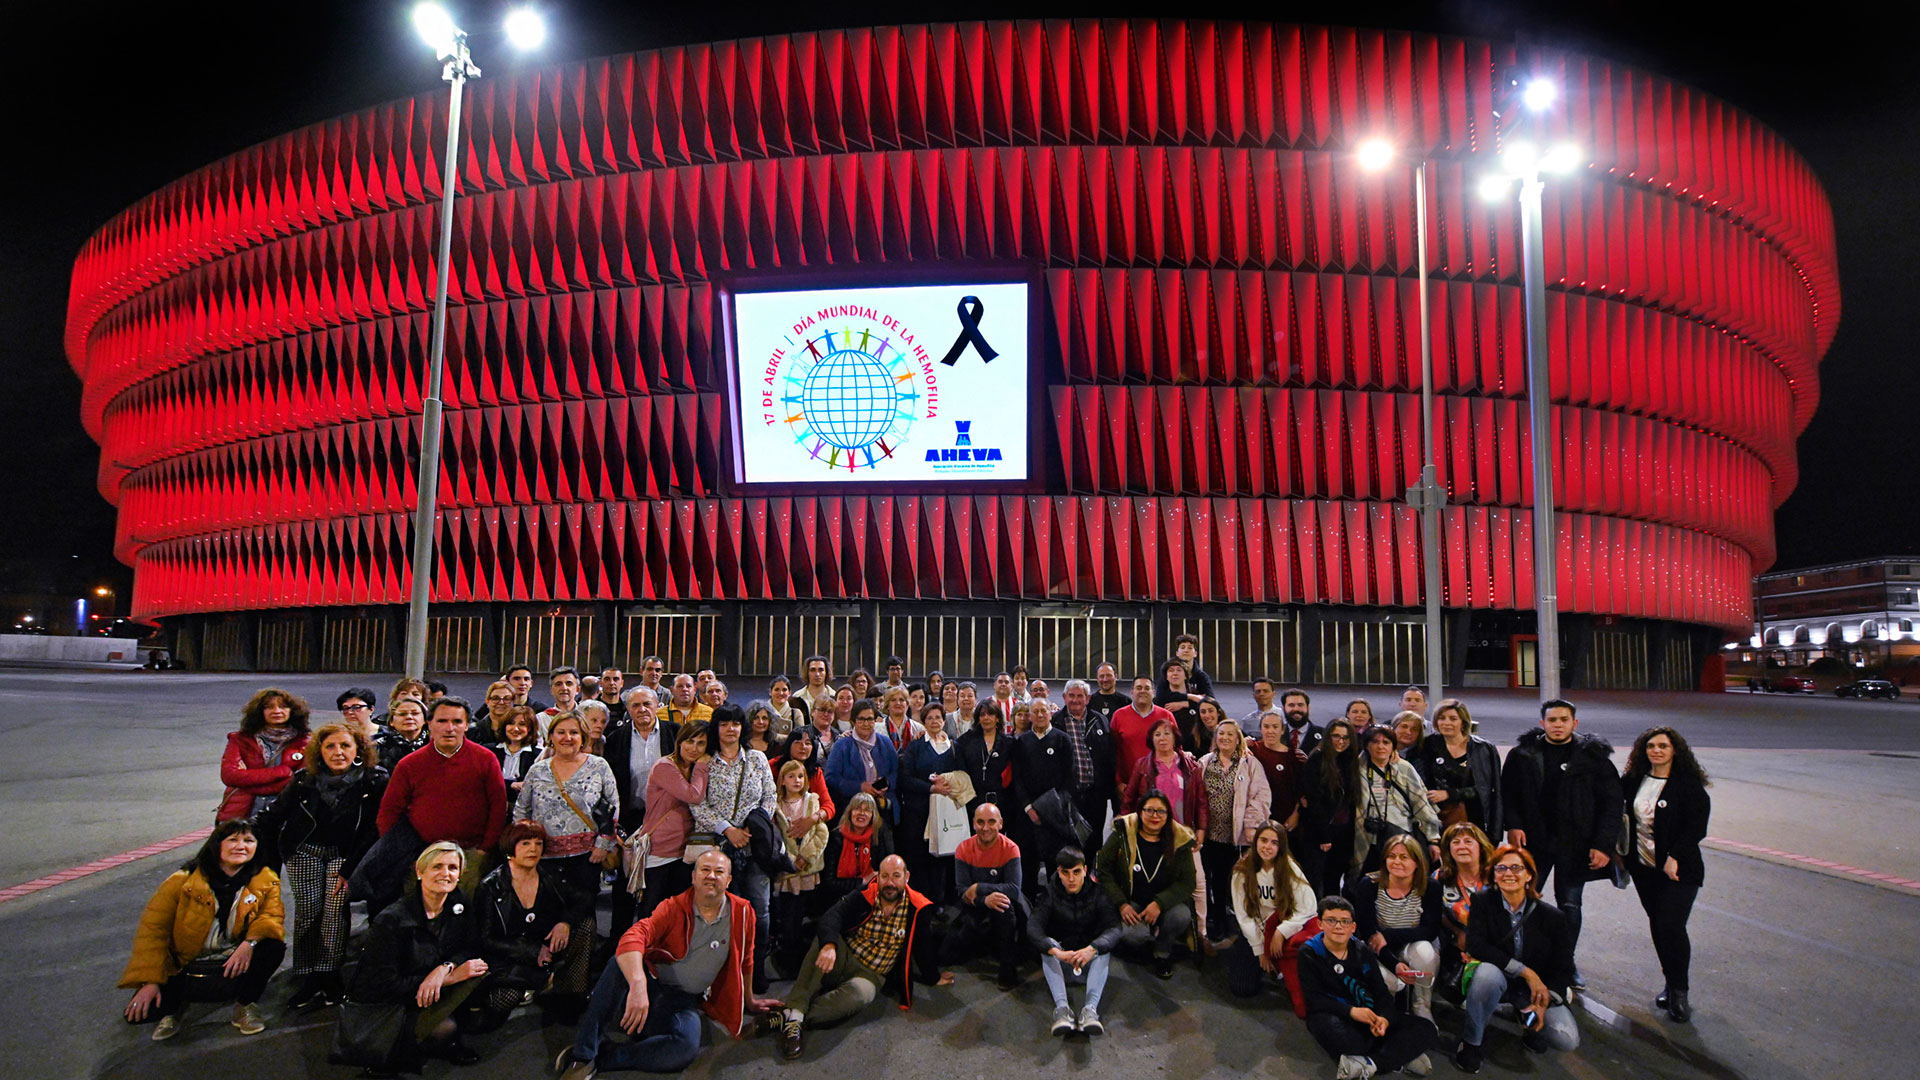 San Mamés, in red for the World Hemophilia Day